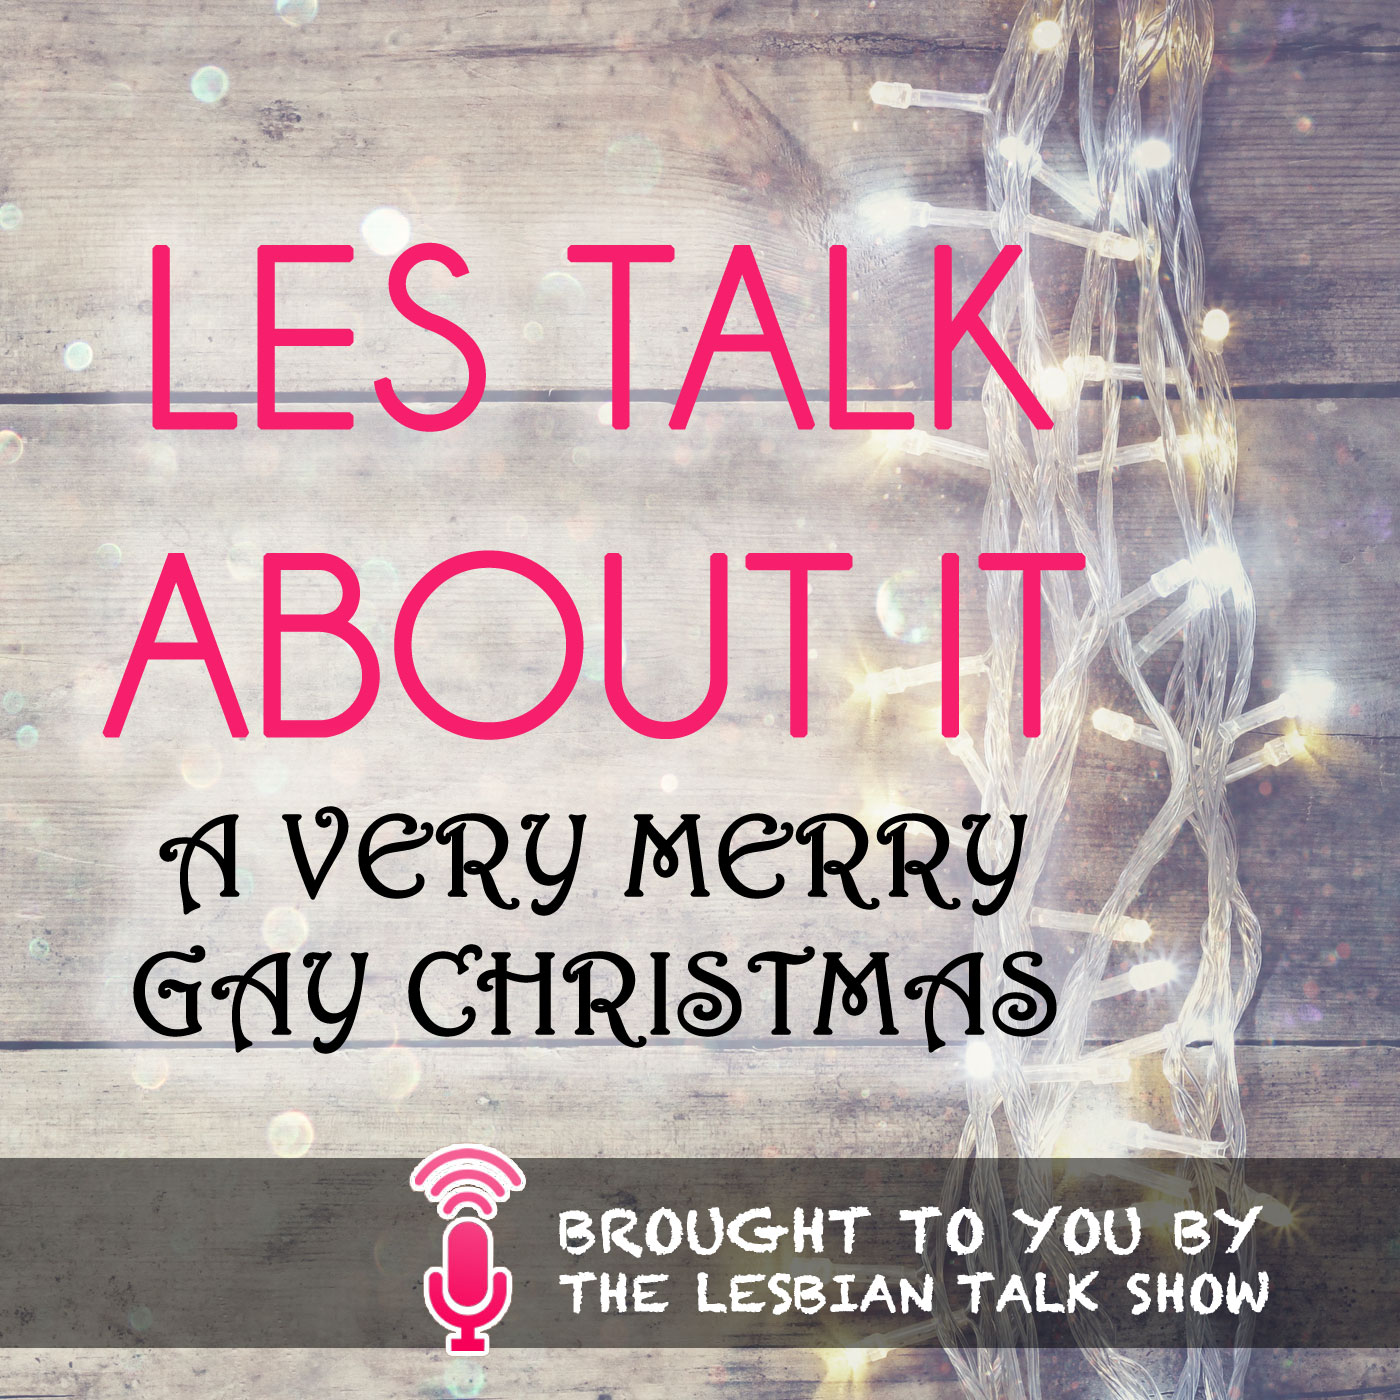 A Very Merry Gay Christmas - Les Talk About It